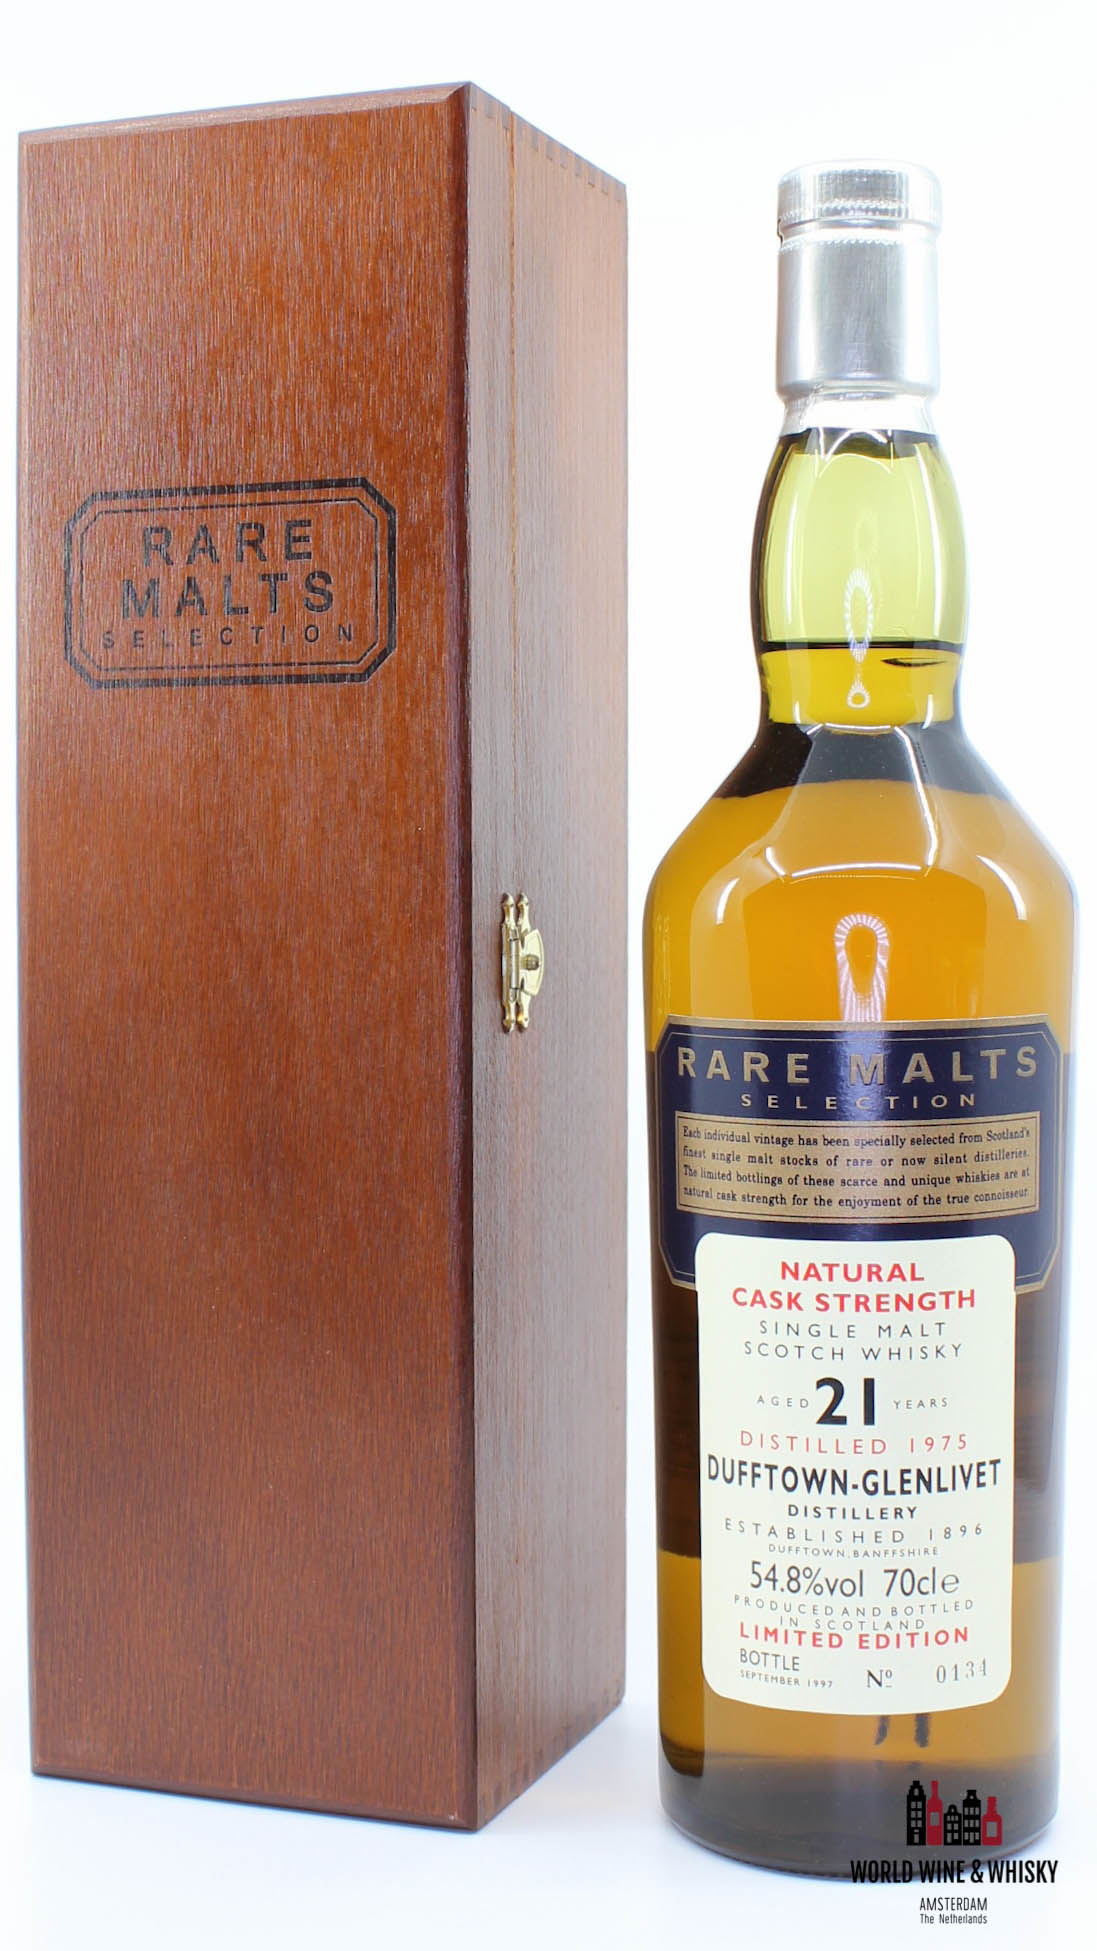 Dufftown Dufftown-Glenlivet 21 Years Old 1975 1997 Rare Malts Selection 54.8% (in wooden box)